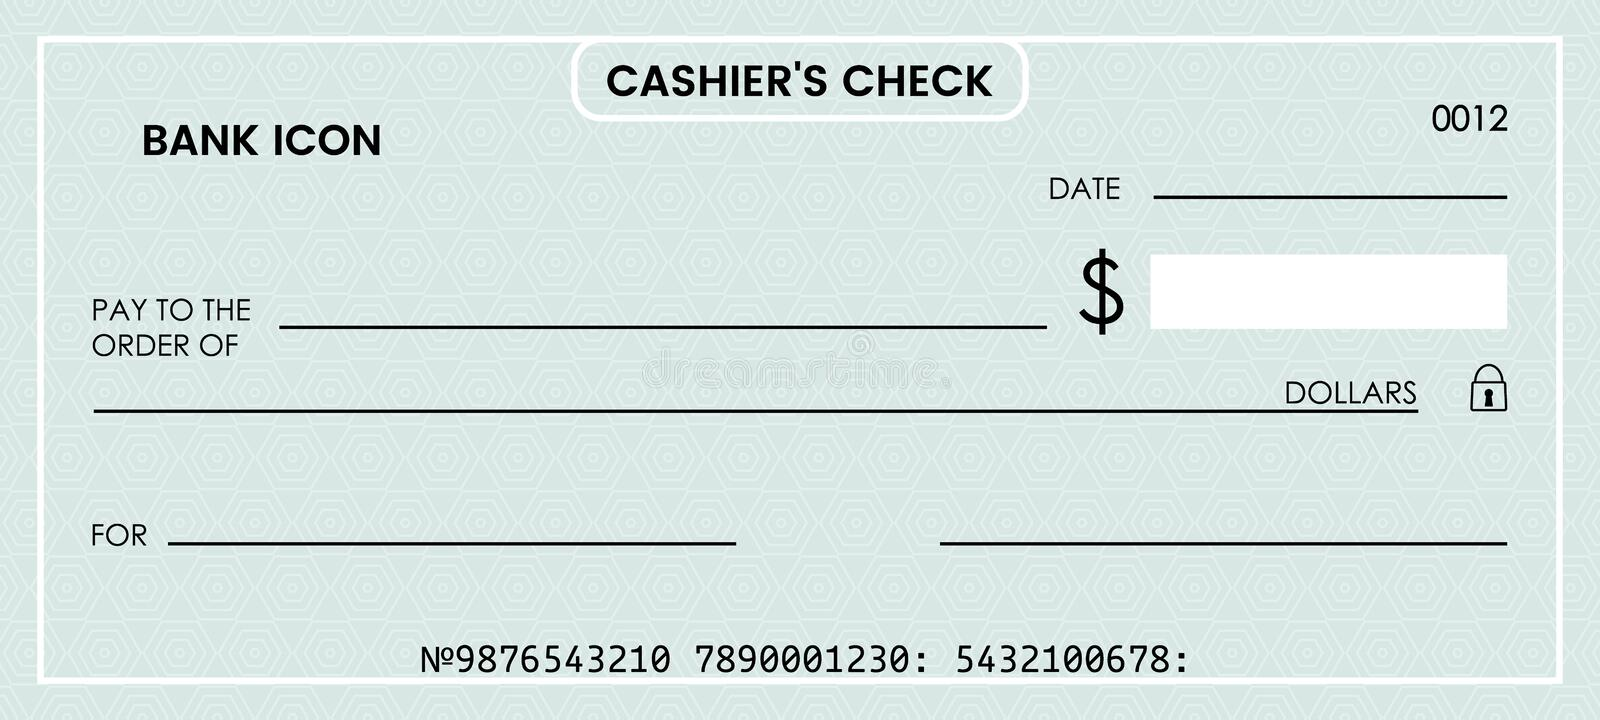 Cheque Computer Icons Bank Payment Money PNG, Clipart, Angle, Black, Black  And White, Brand, Cashiers Check